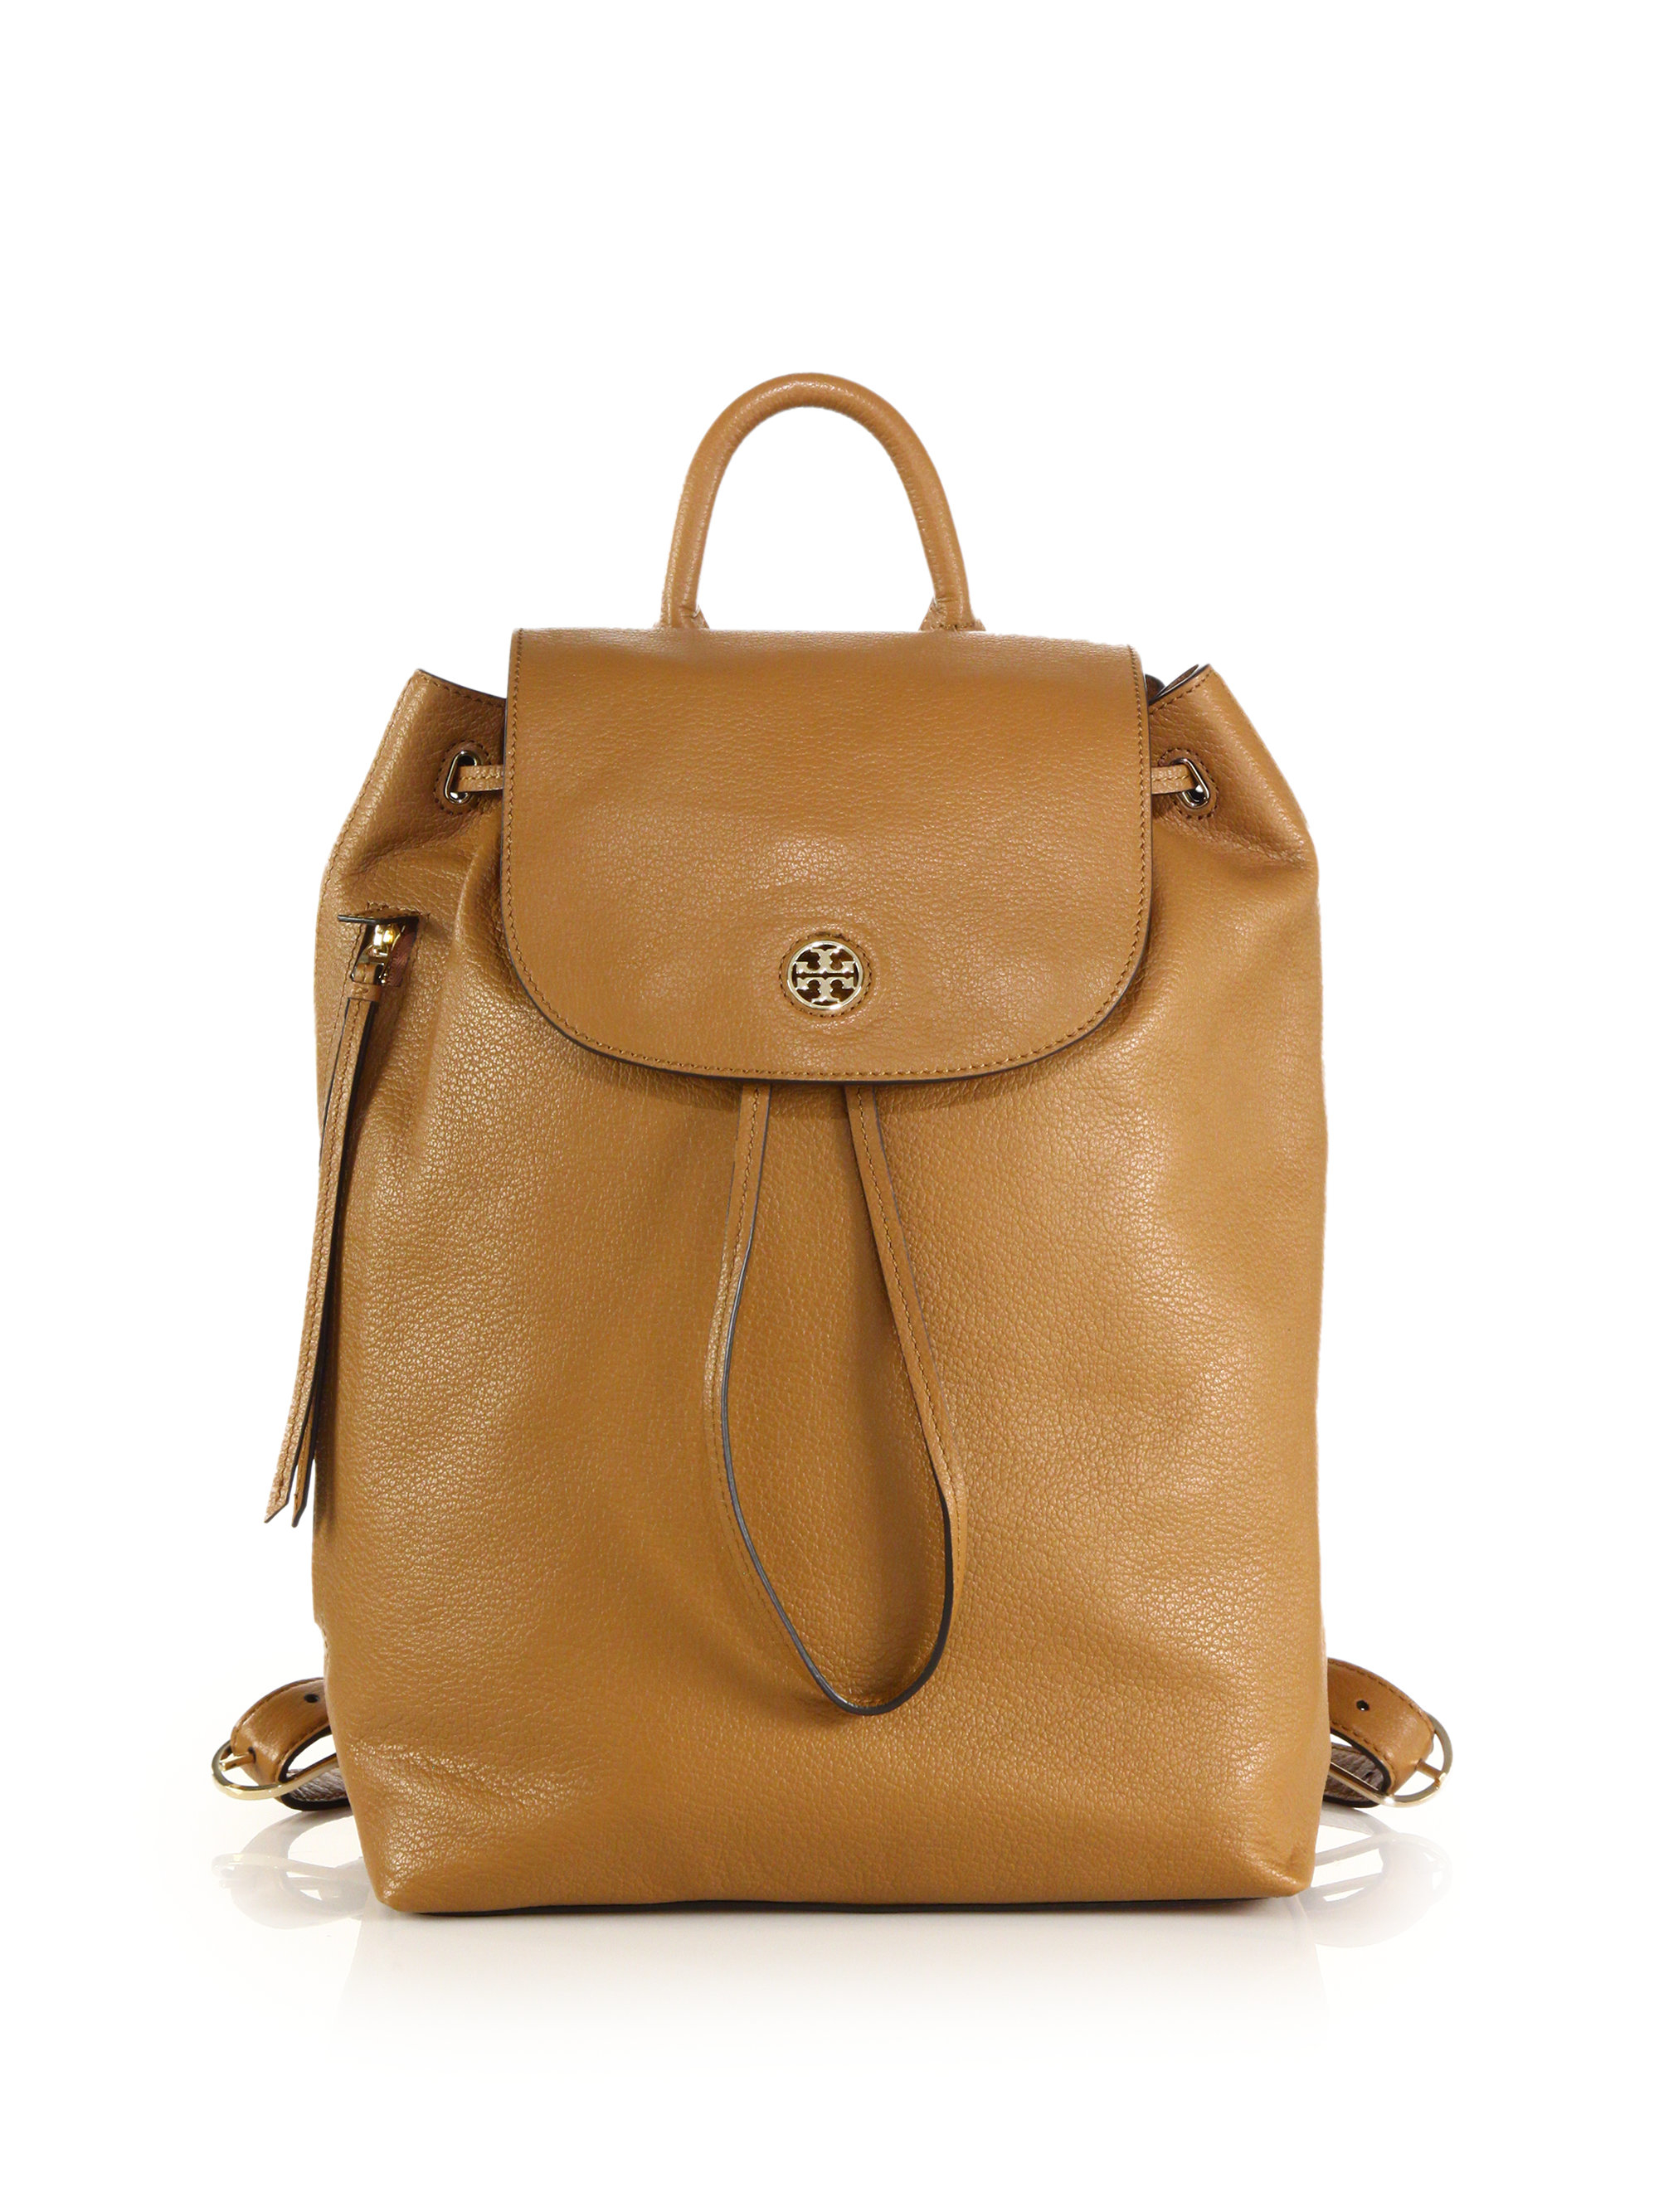 dad27a0b4a85 Lyst - Tory Burch Brody Leather Backpack in Natural